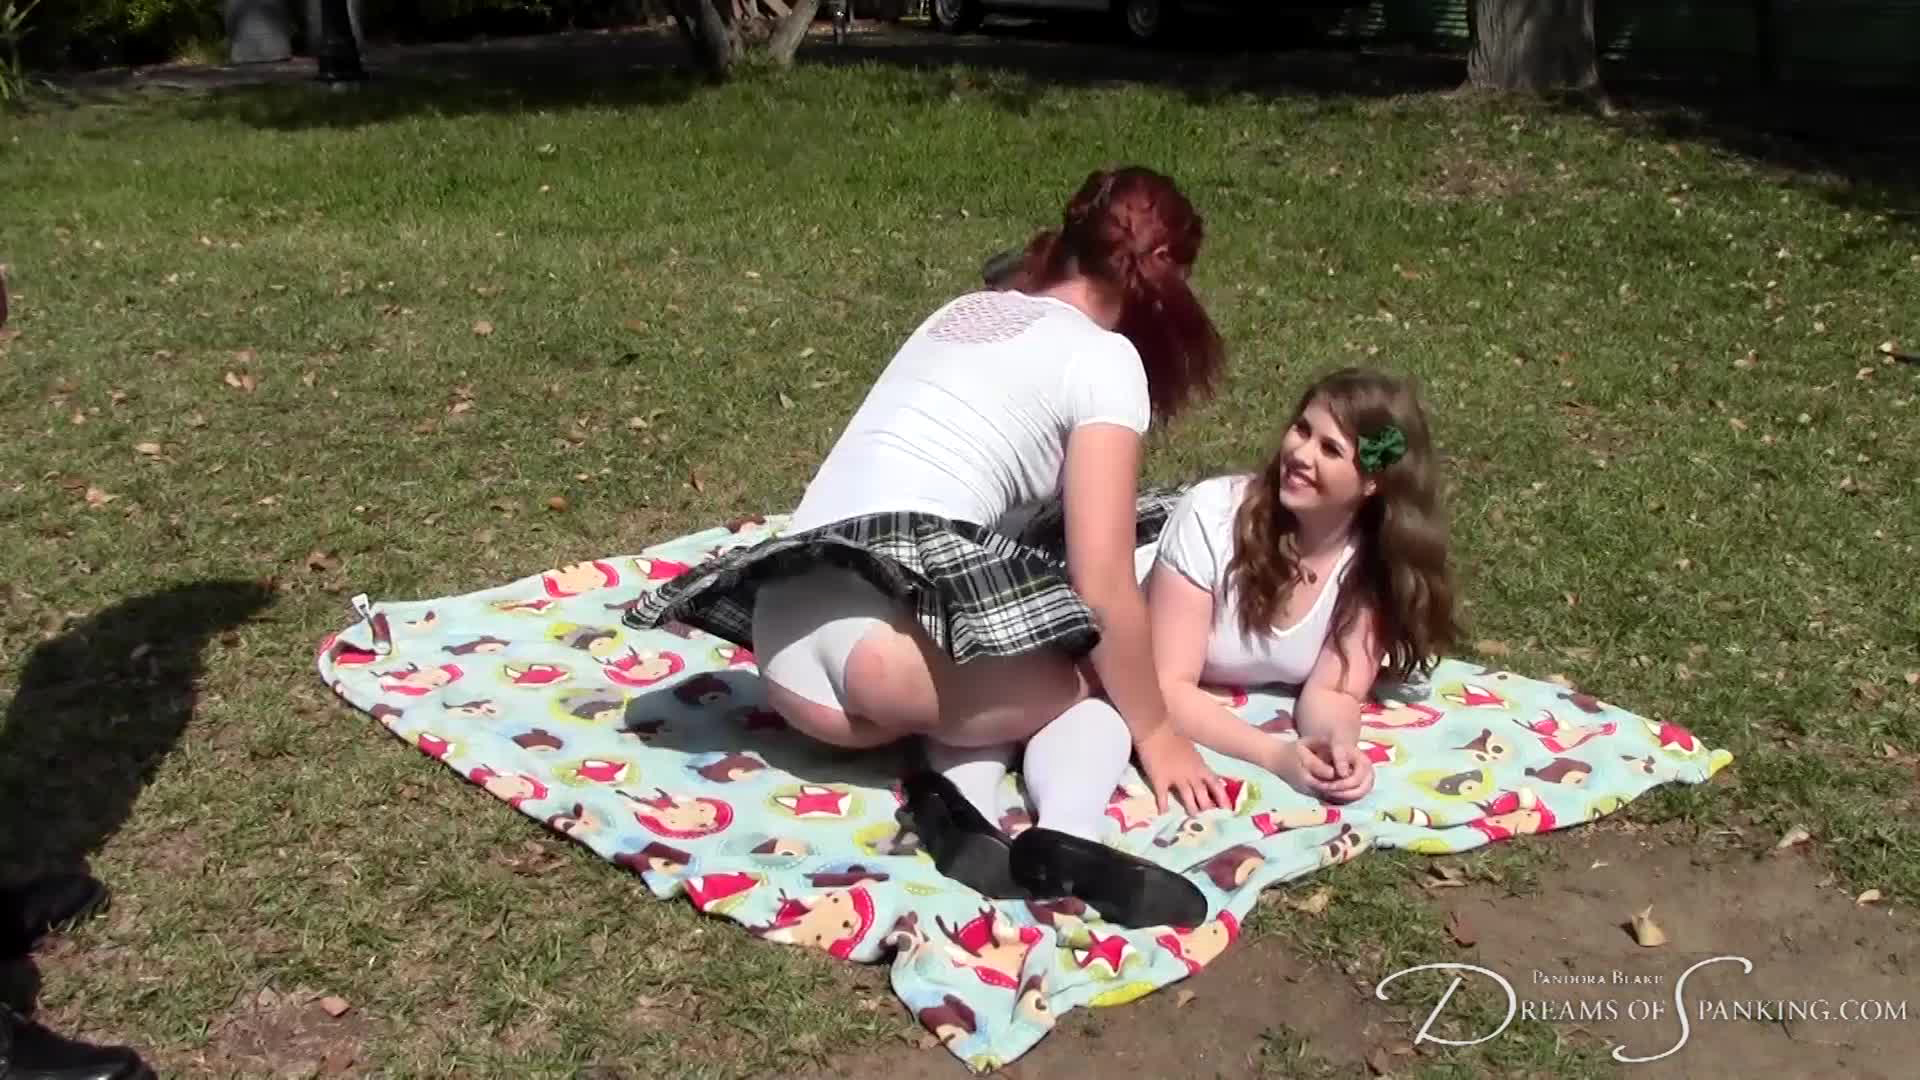 Upskirt moment behind the scenes with Maddy Marks and Christy Cutie - Dreams of Spanking